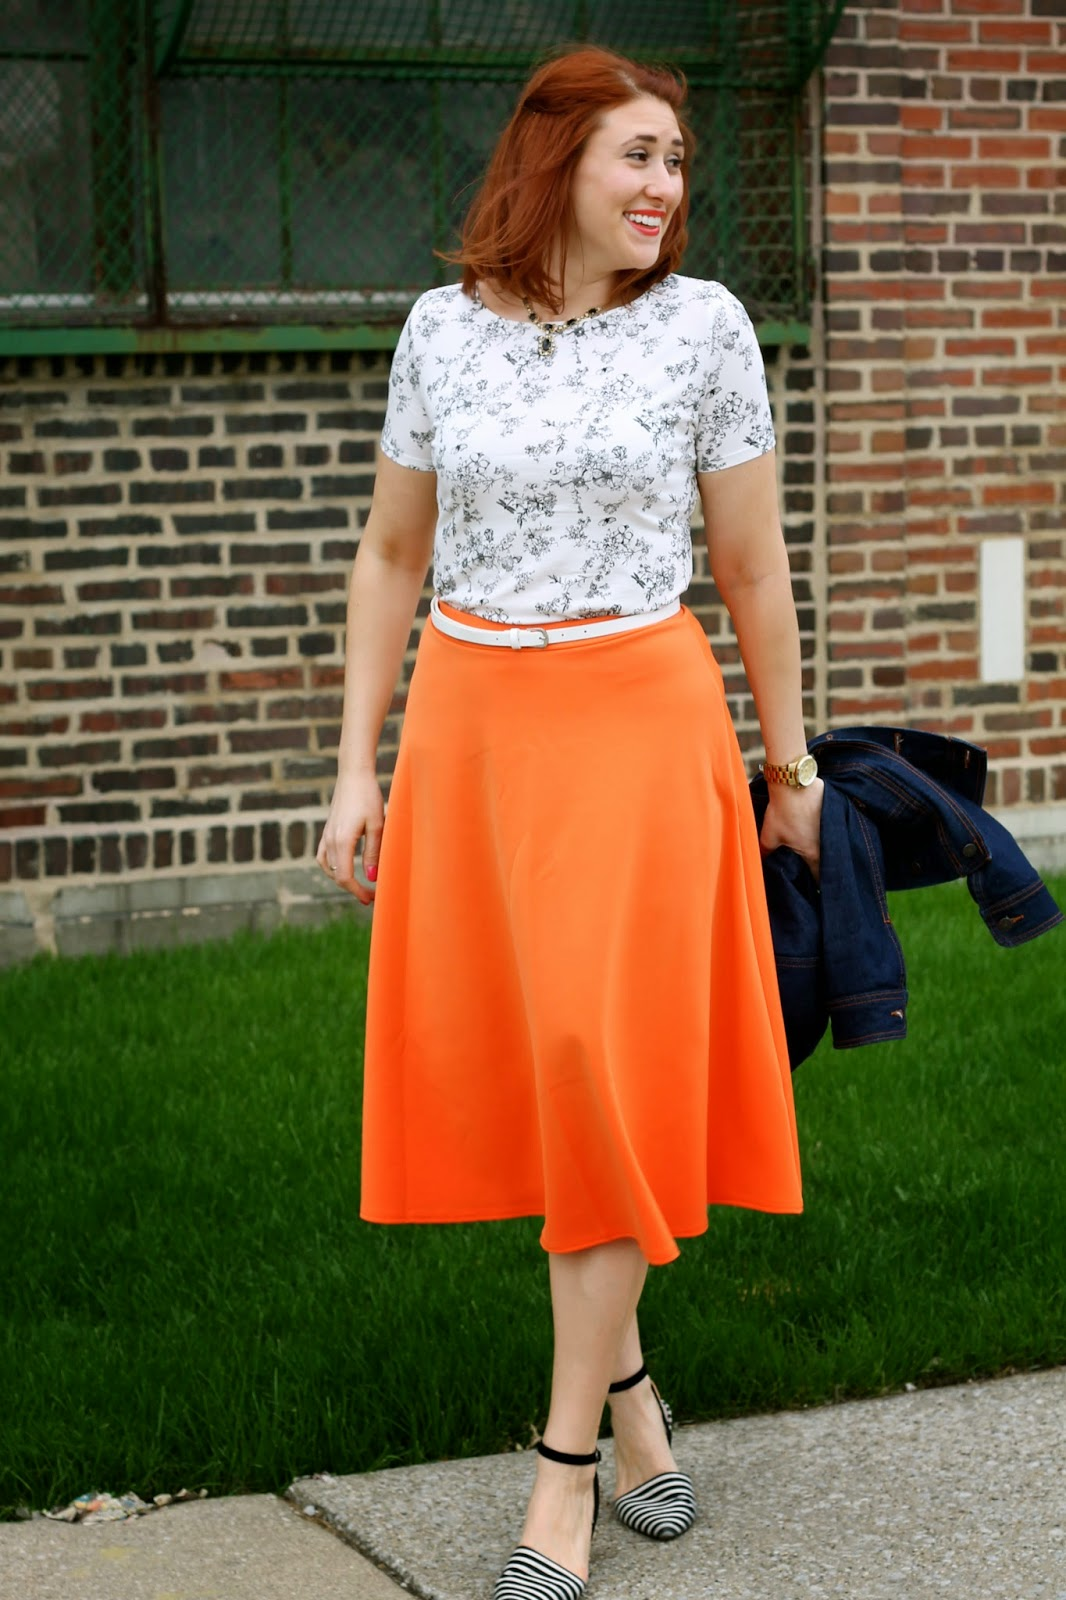 HOT PINK style: Orange Midi Skirt